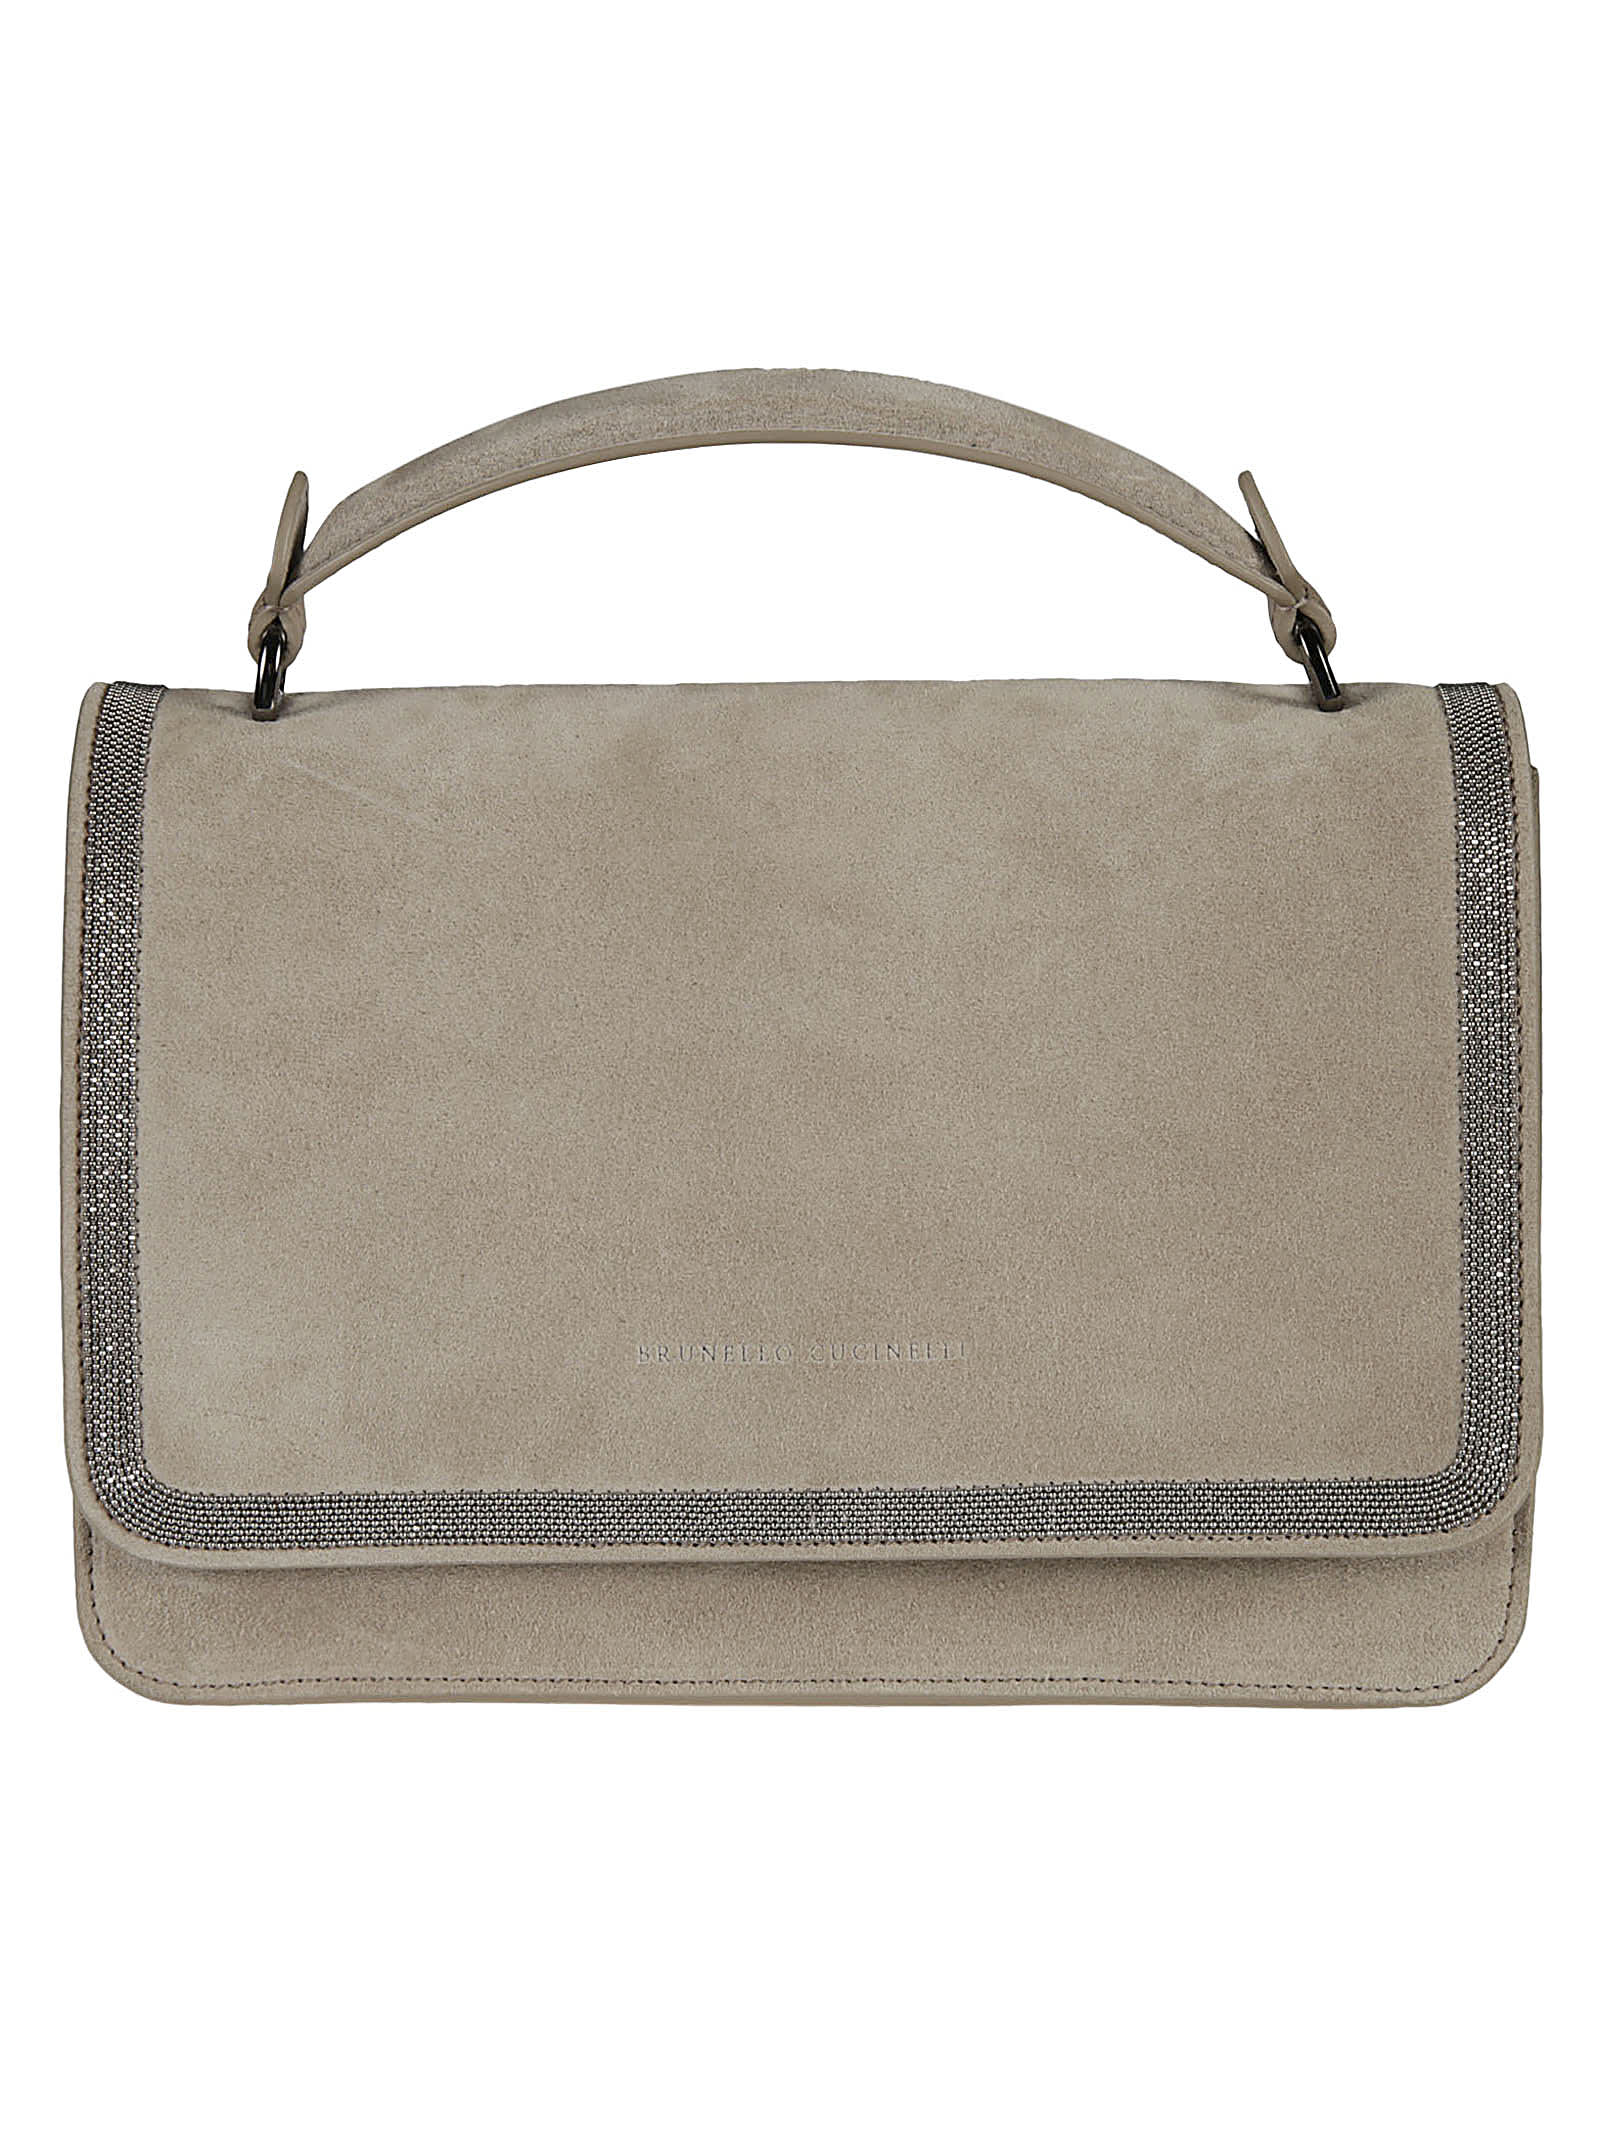 Brunello Cucinelli Bead Embellished Flap Tote